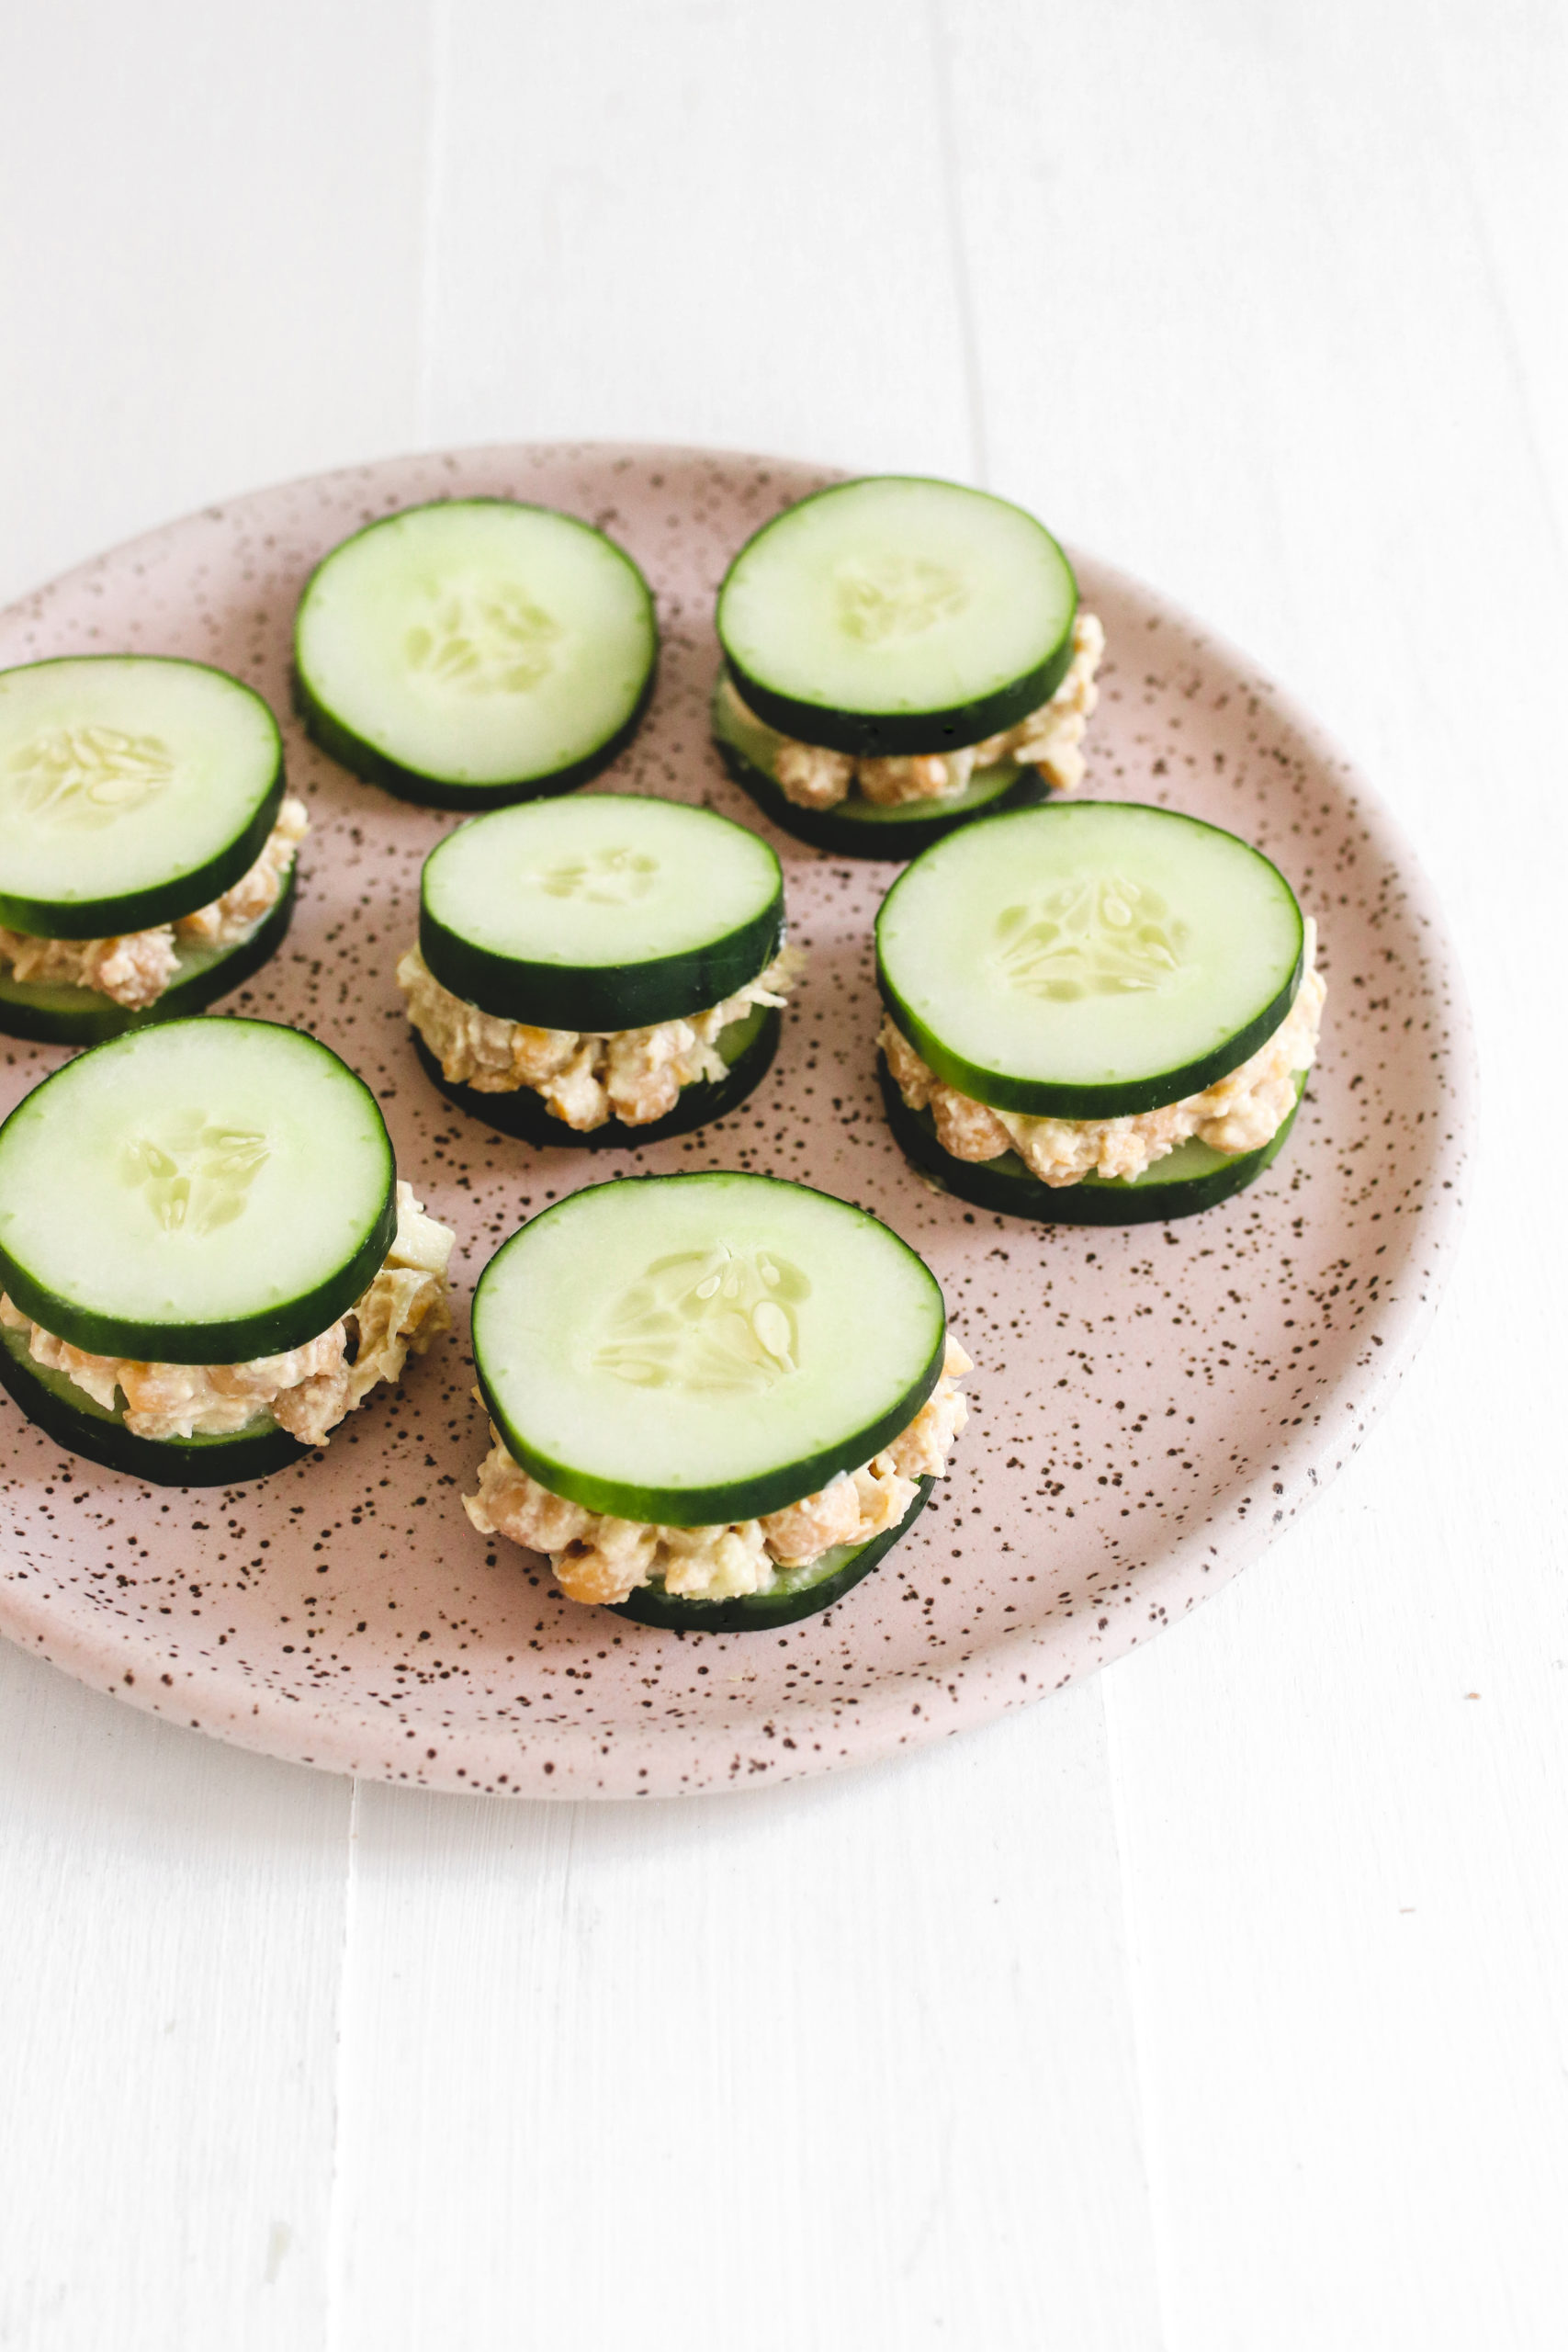 Chickpea Tuna Salad Cucumber Sandwiches Veggiekins